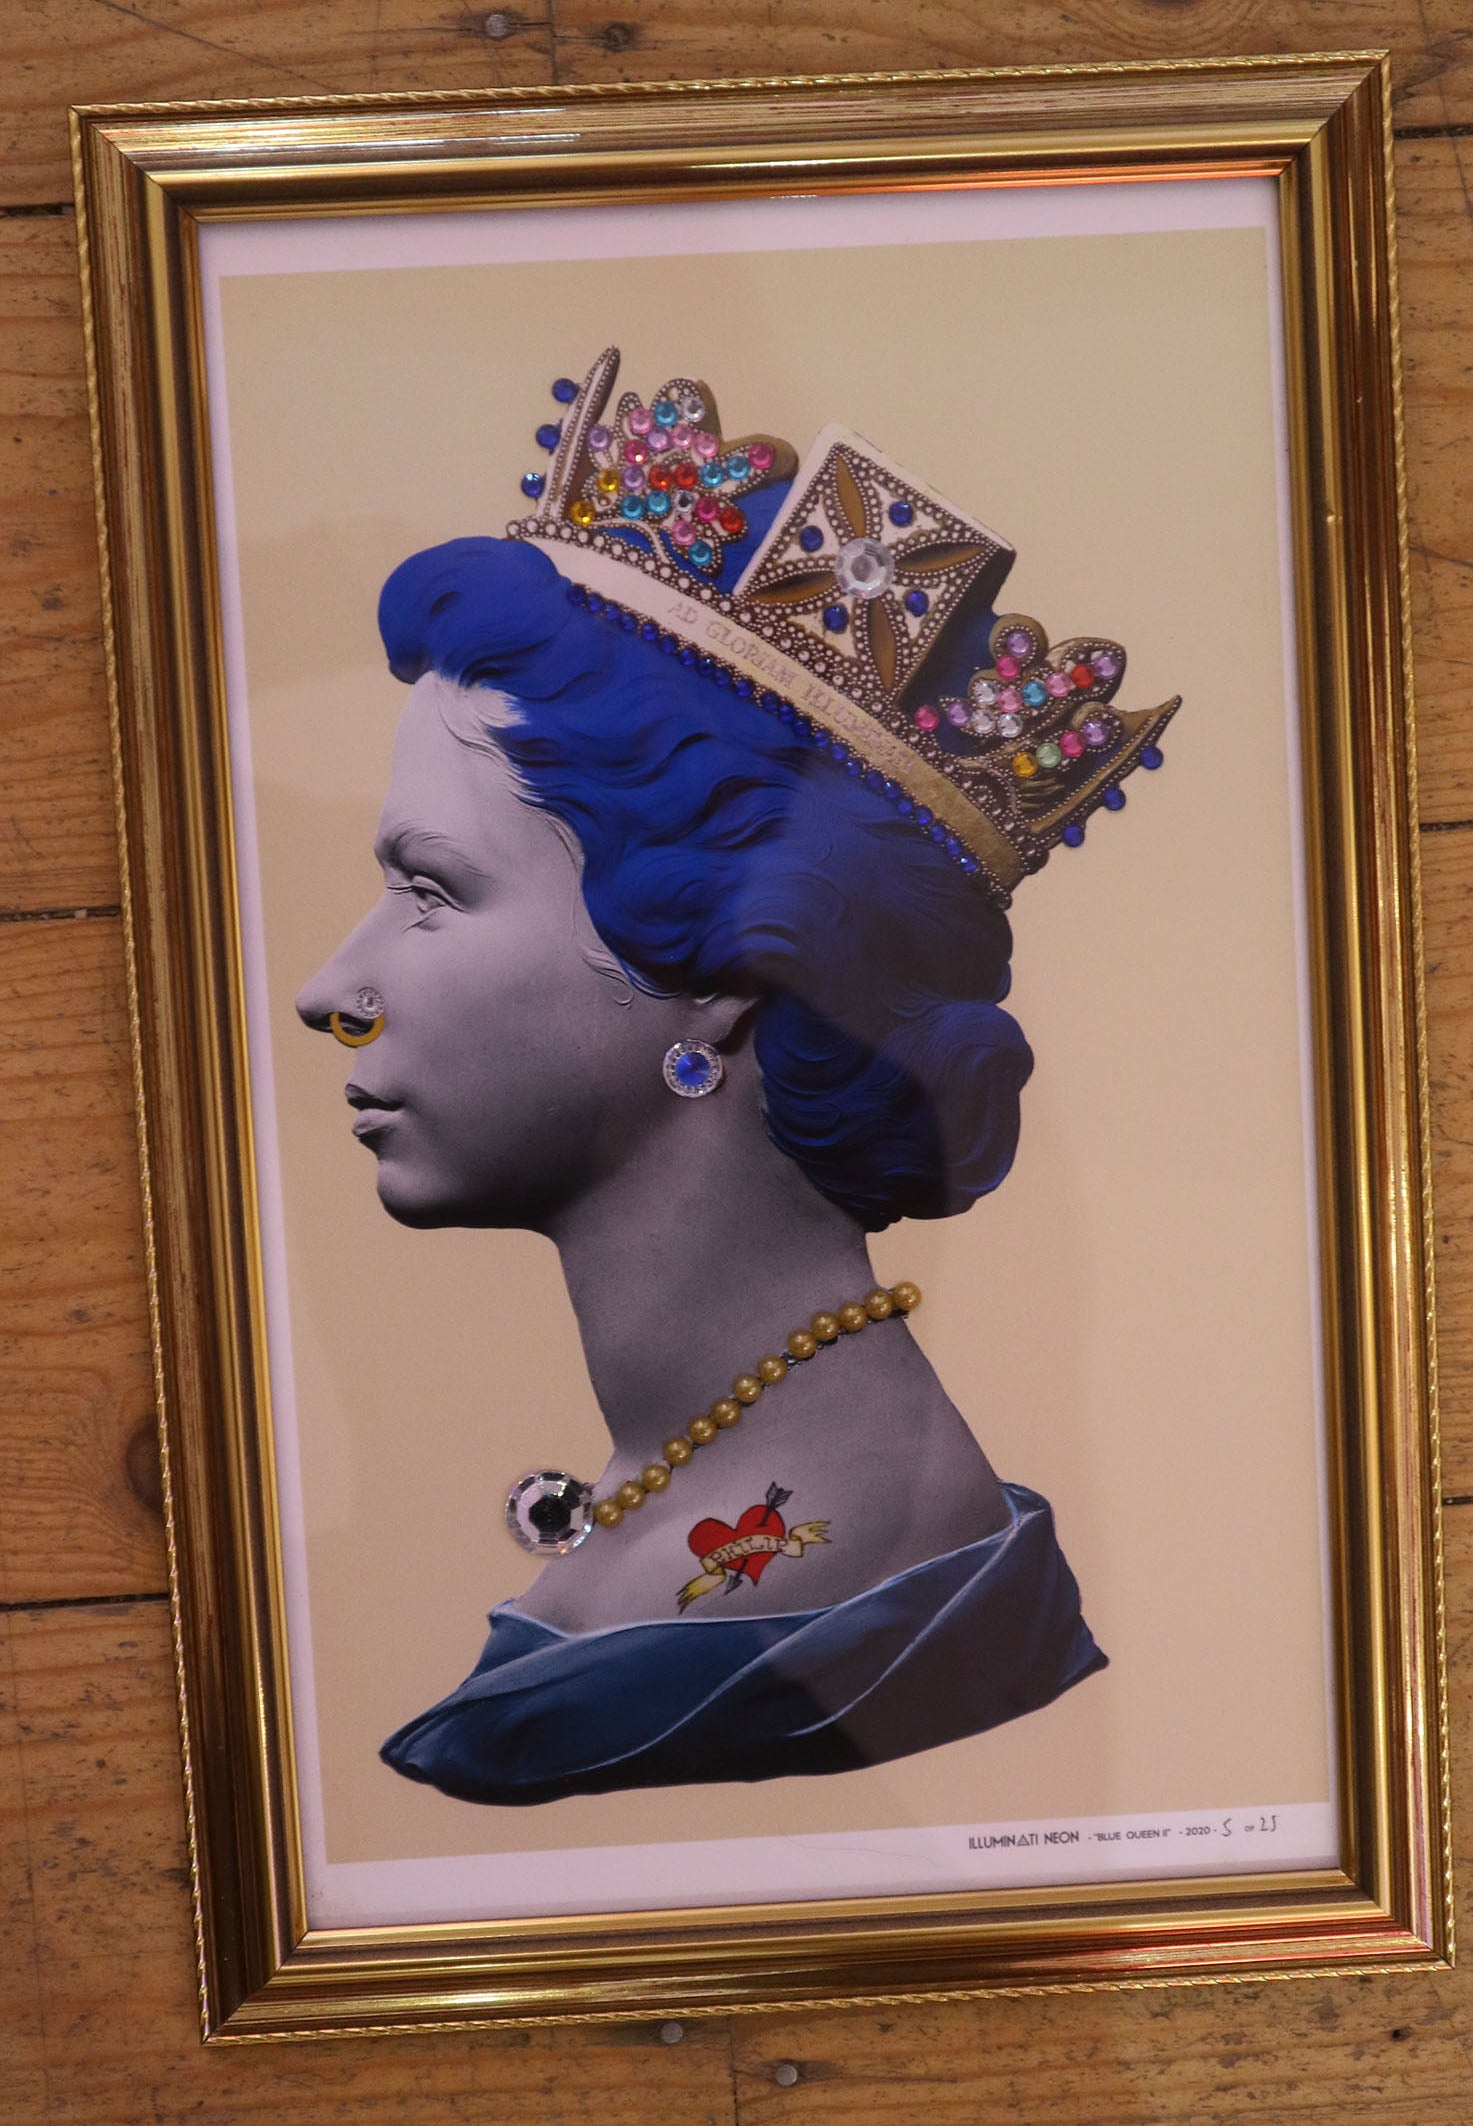 Illuminati Neon - Small Blue Punk Queen (Framed)